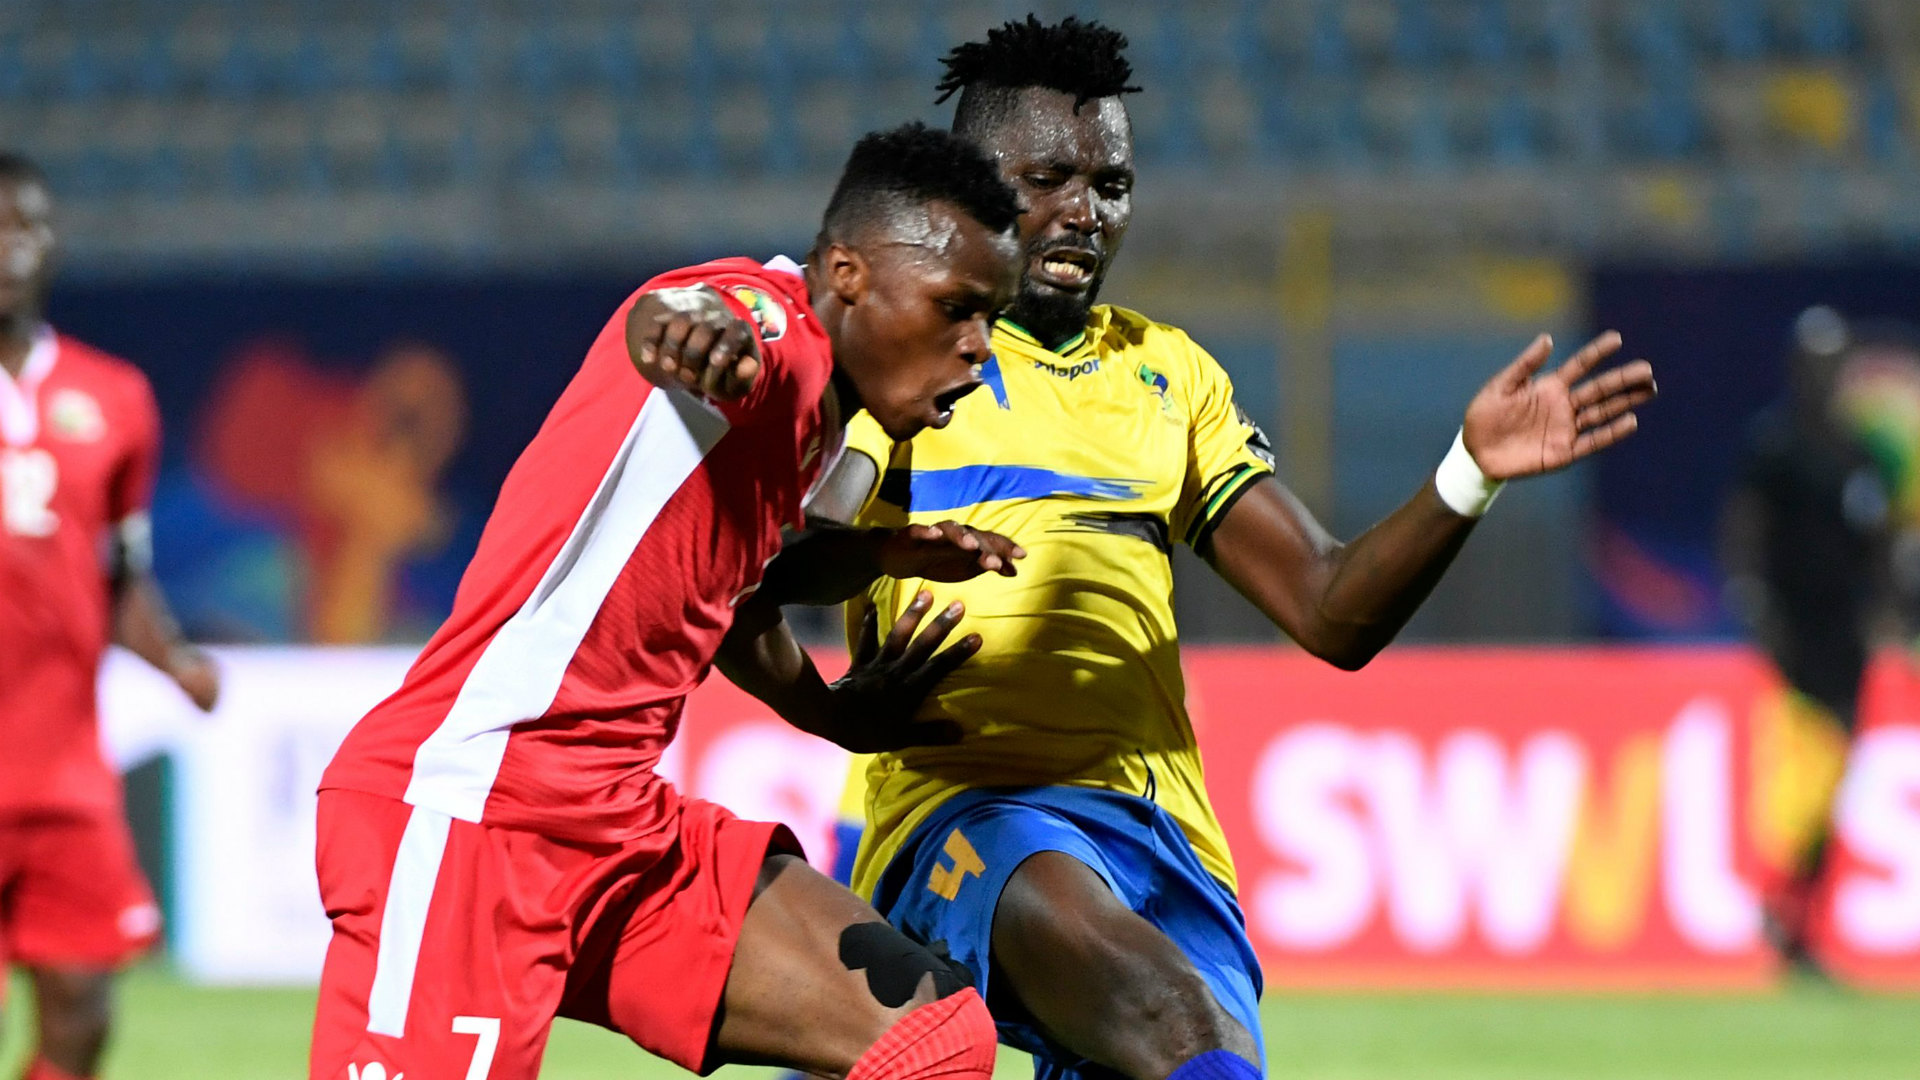 Afcon 2021 Qualifiers: Tanzania eye more Afcon berths – TFF